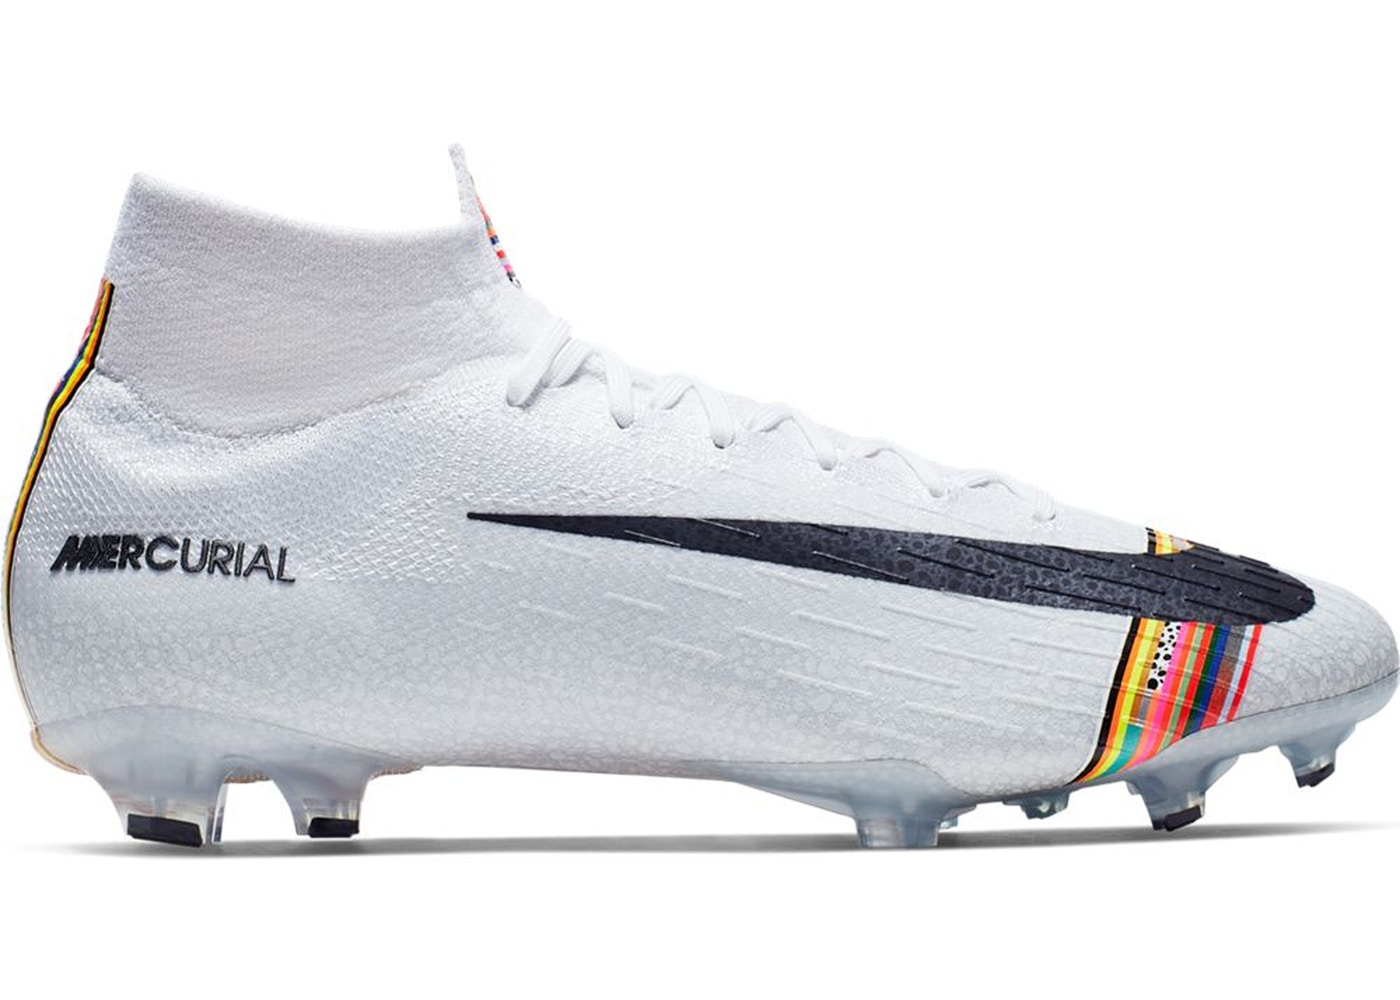 promo code bffe0 c5363 Nike Mercurial Superfly 360 Elite FG Lvl Up Pure Platinum